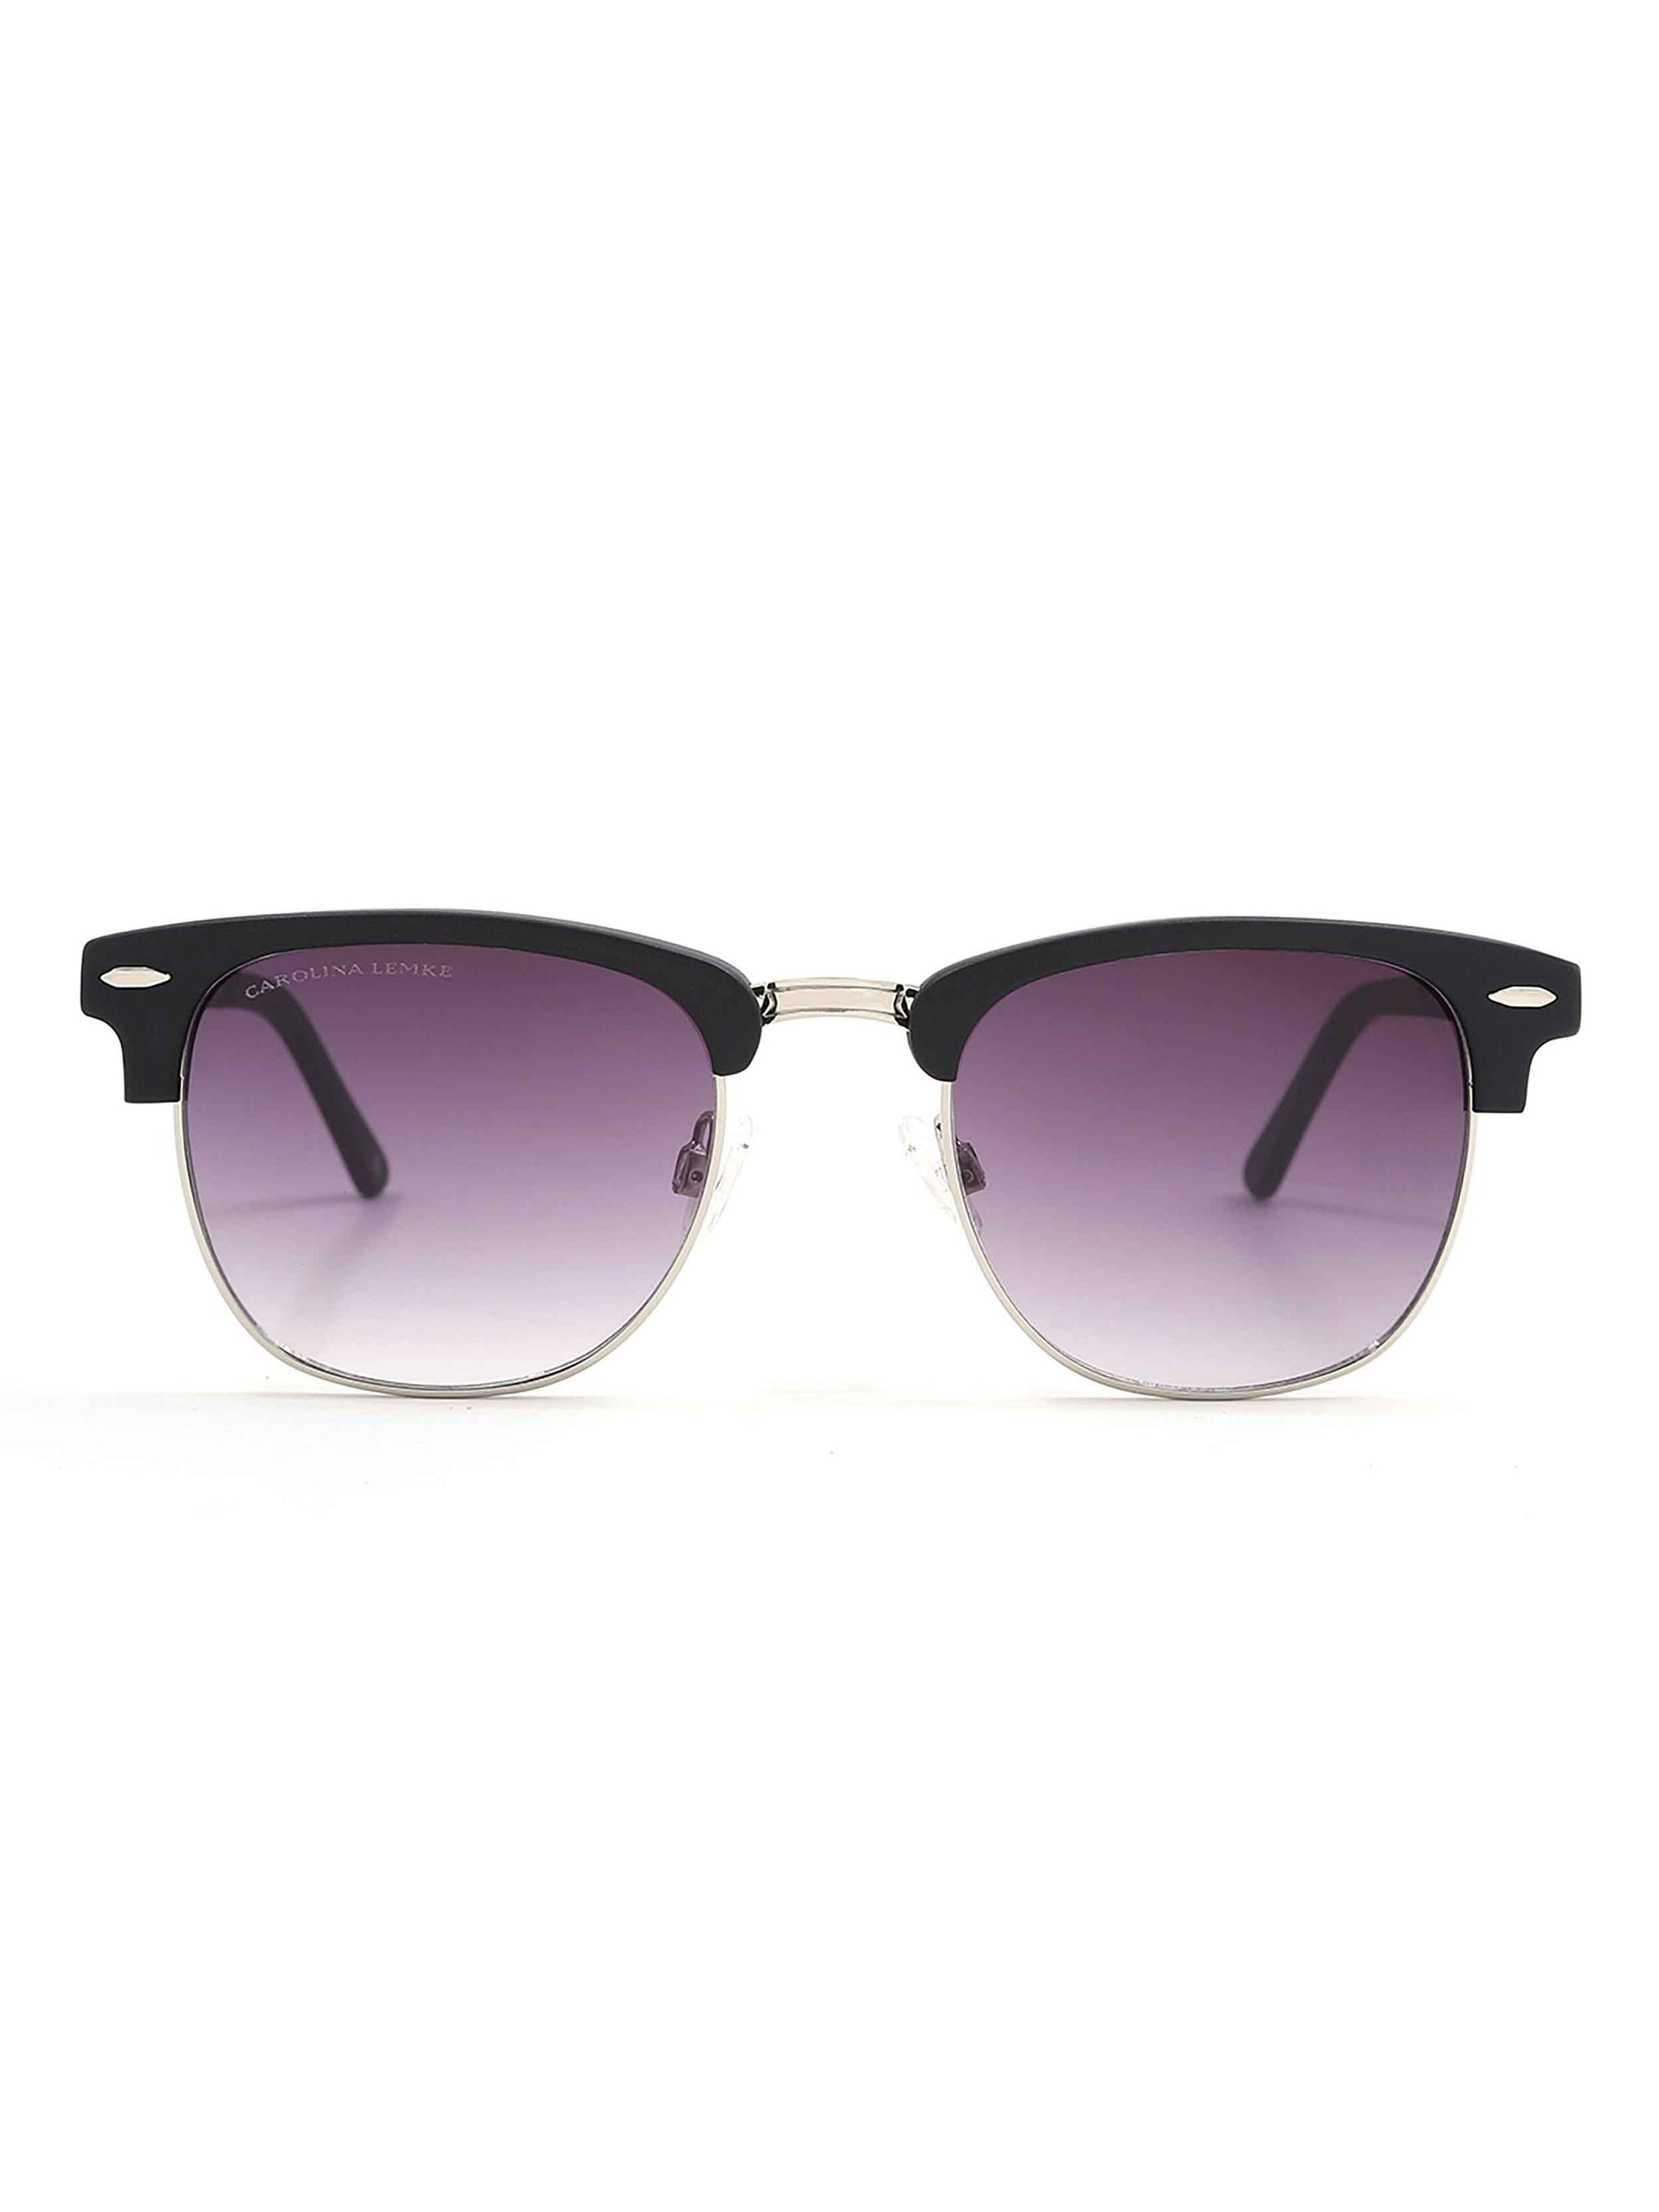 Lentes Carolina Lemke CL7432 02